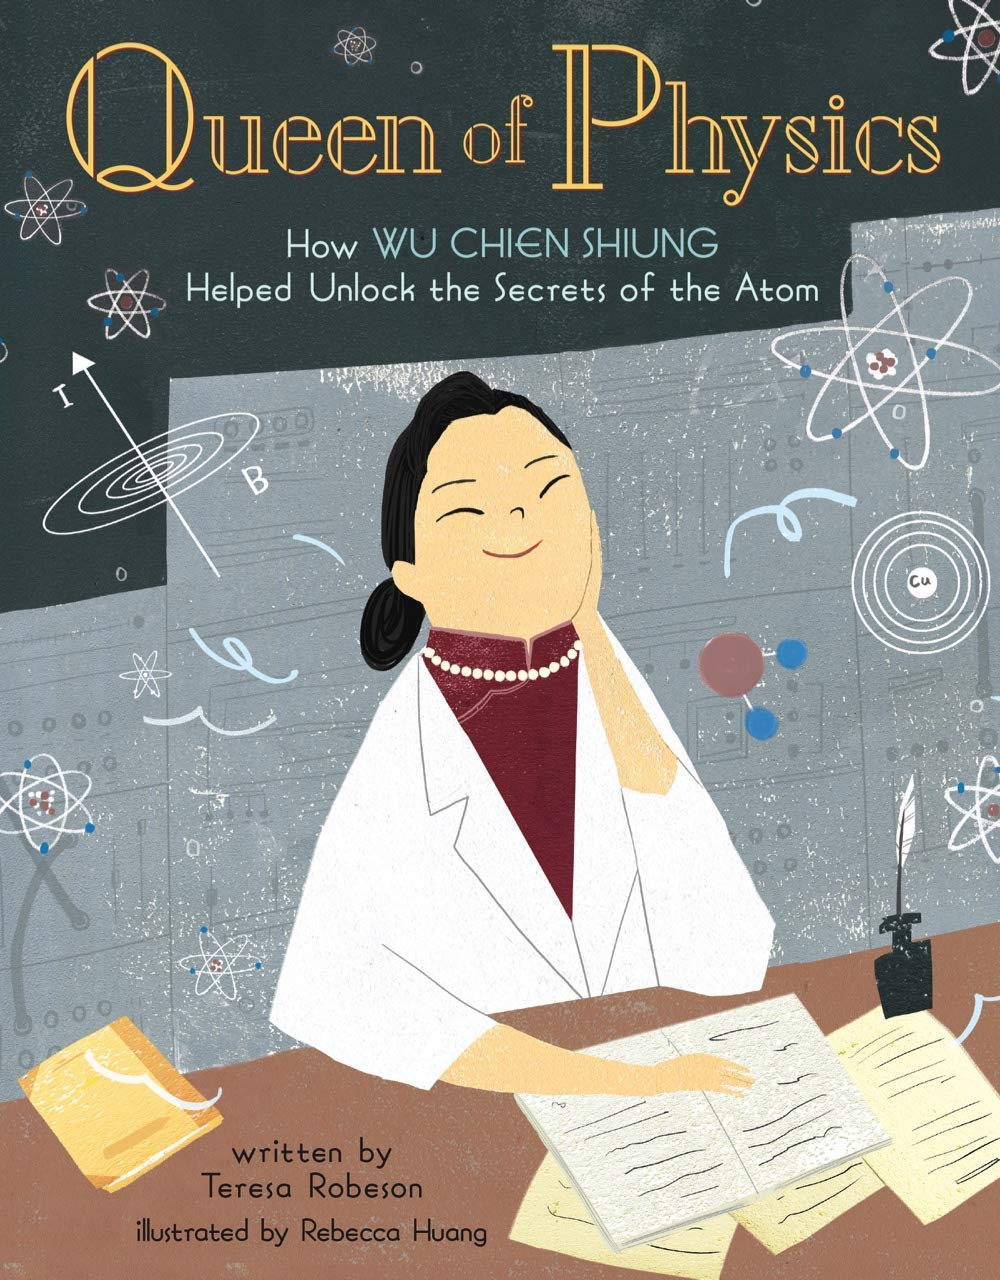 How Wu Chien Shiung Helped Unlock the Secrets of the Atom  - Picture Book Biographies